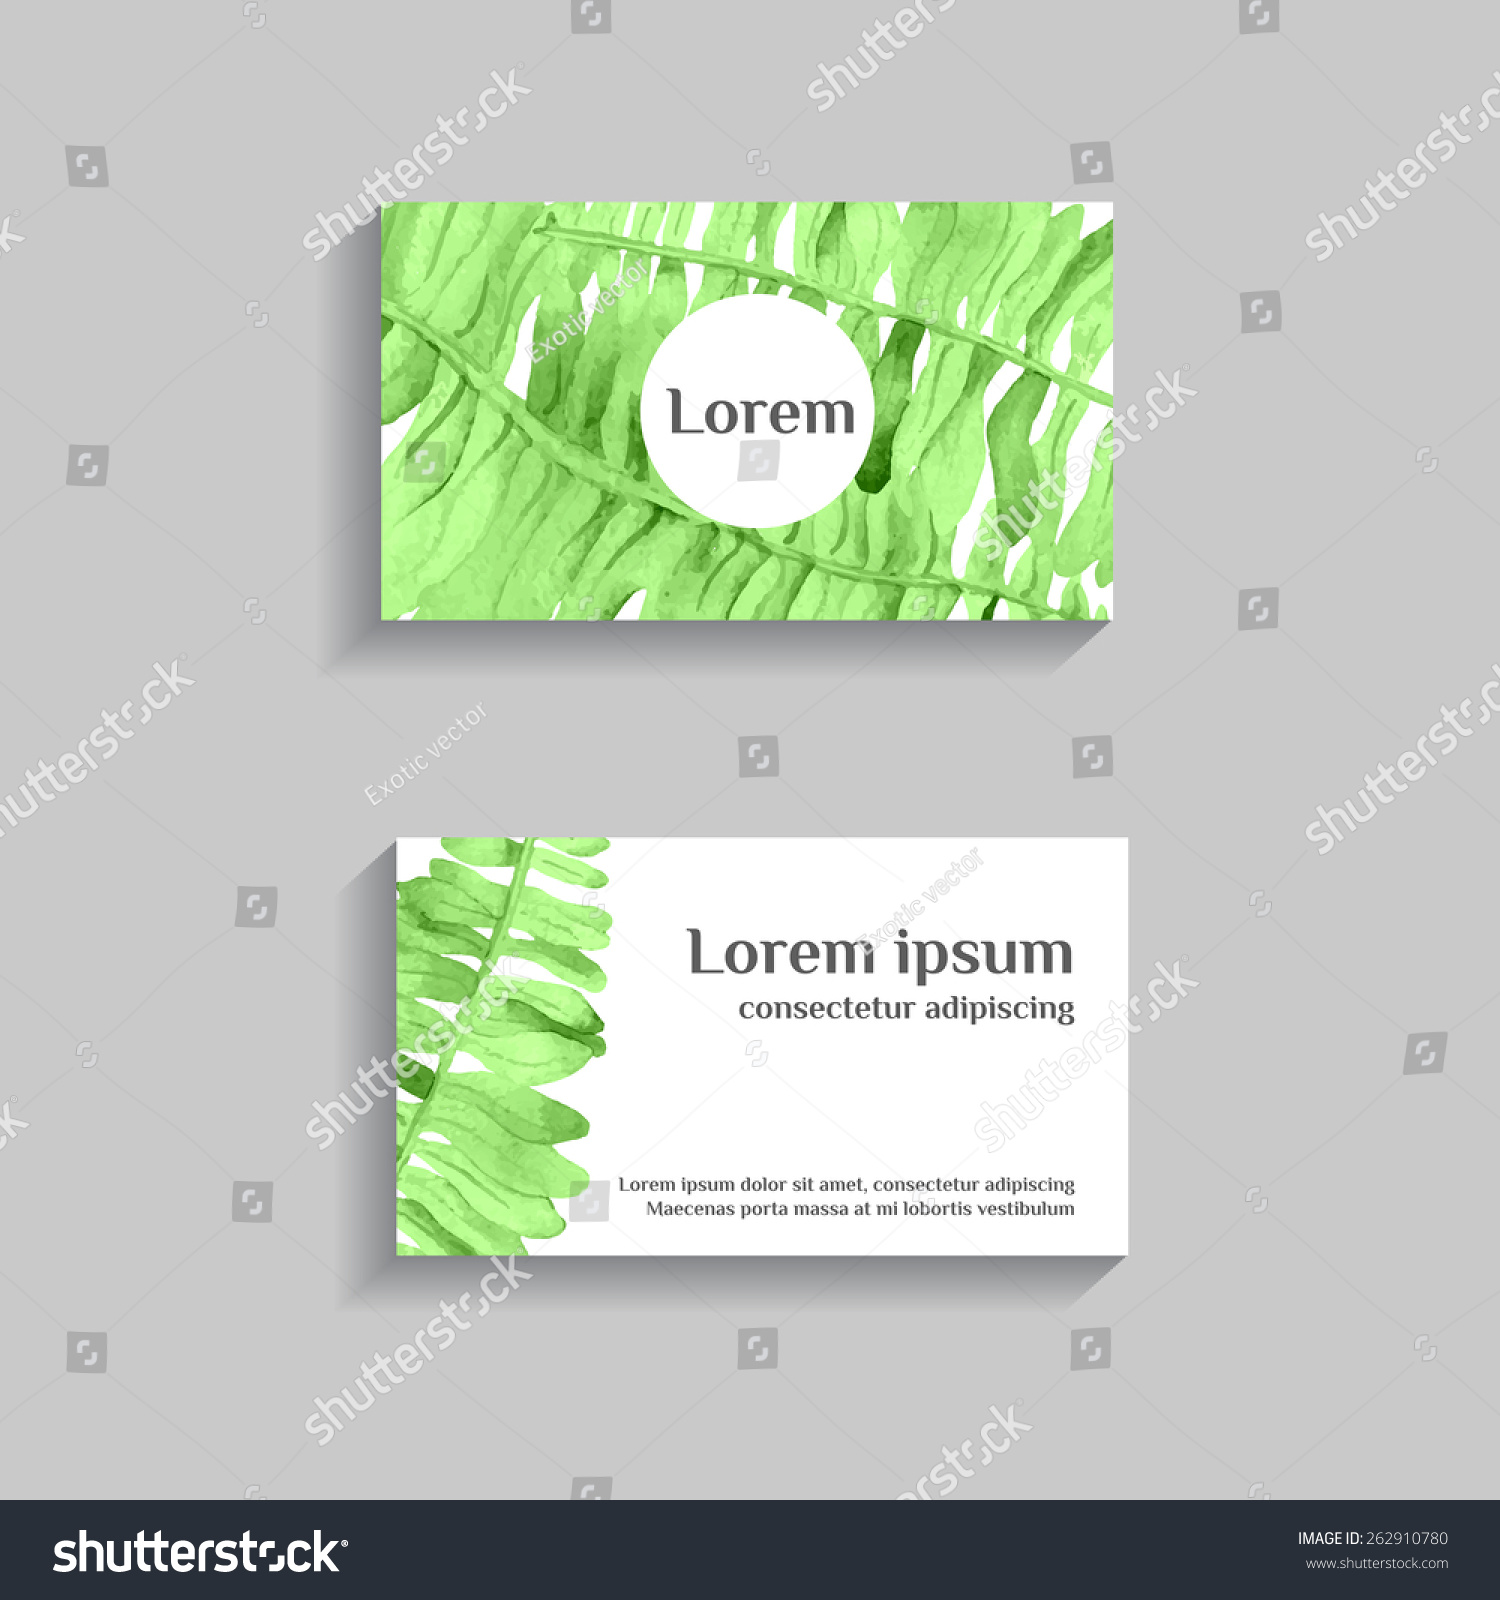 watercolor tropical business card with fern background